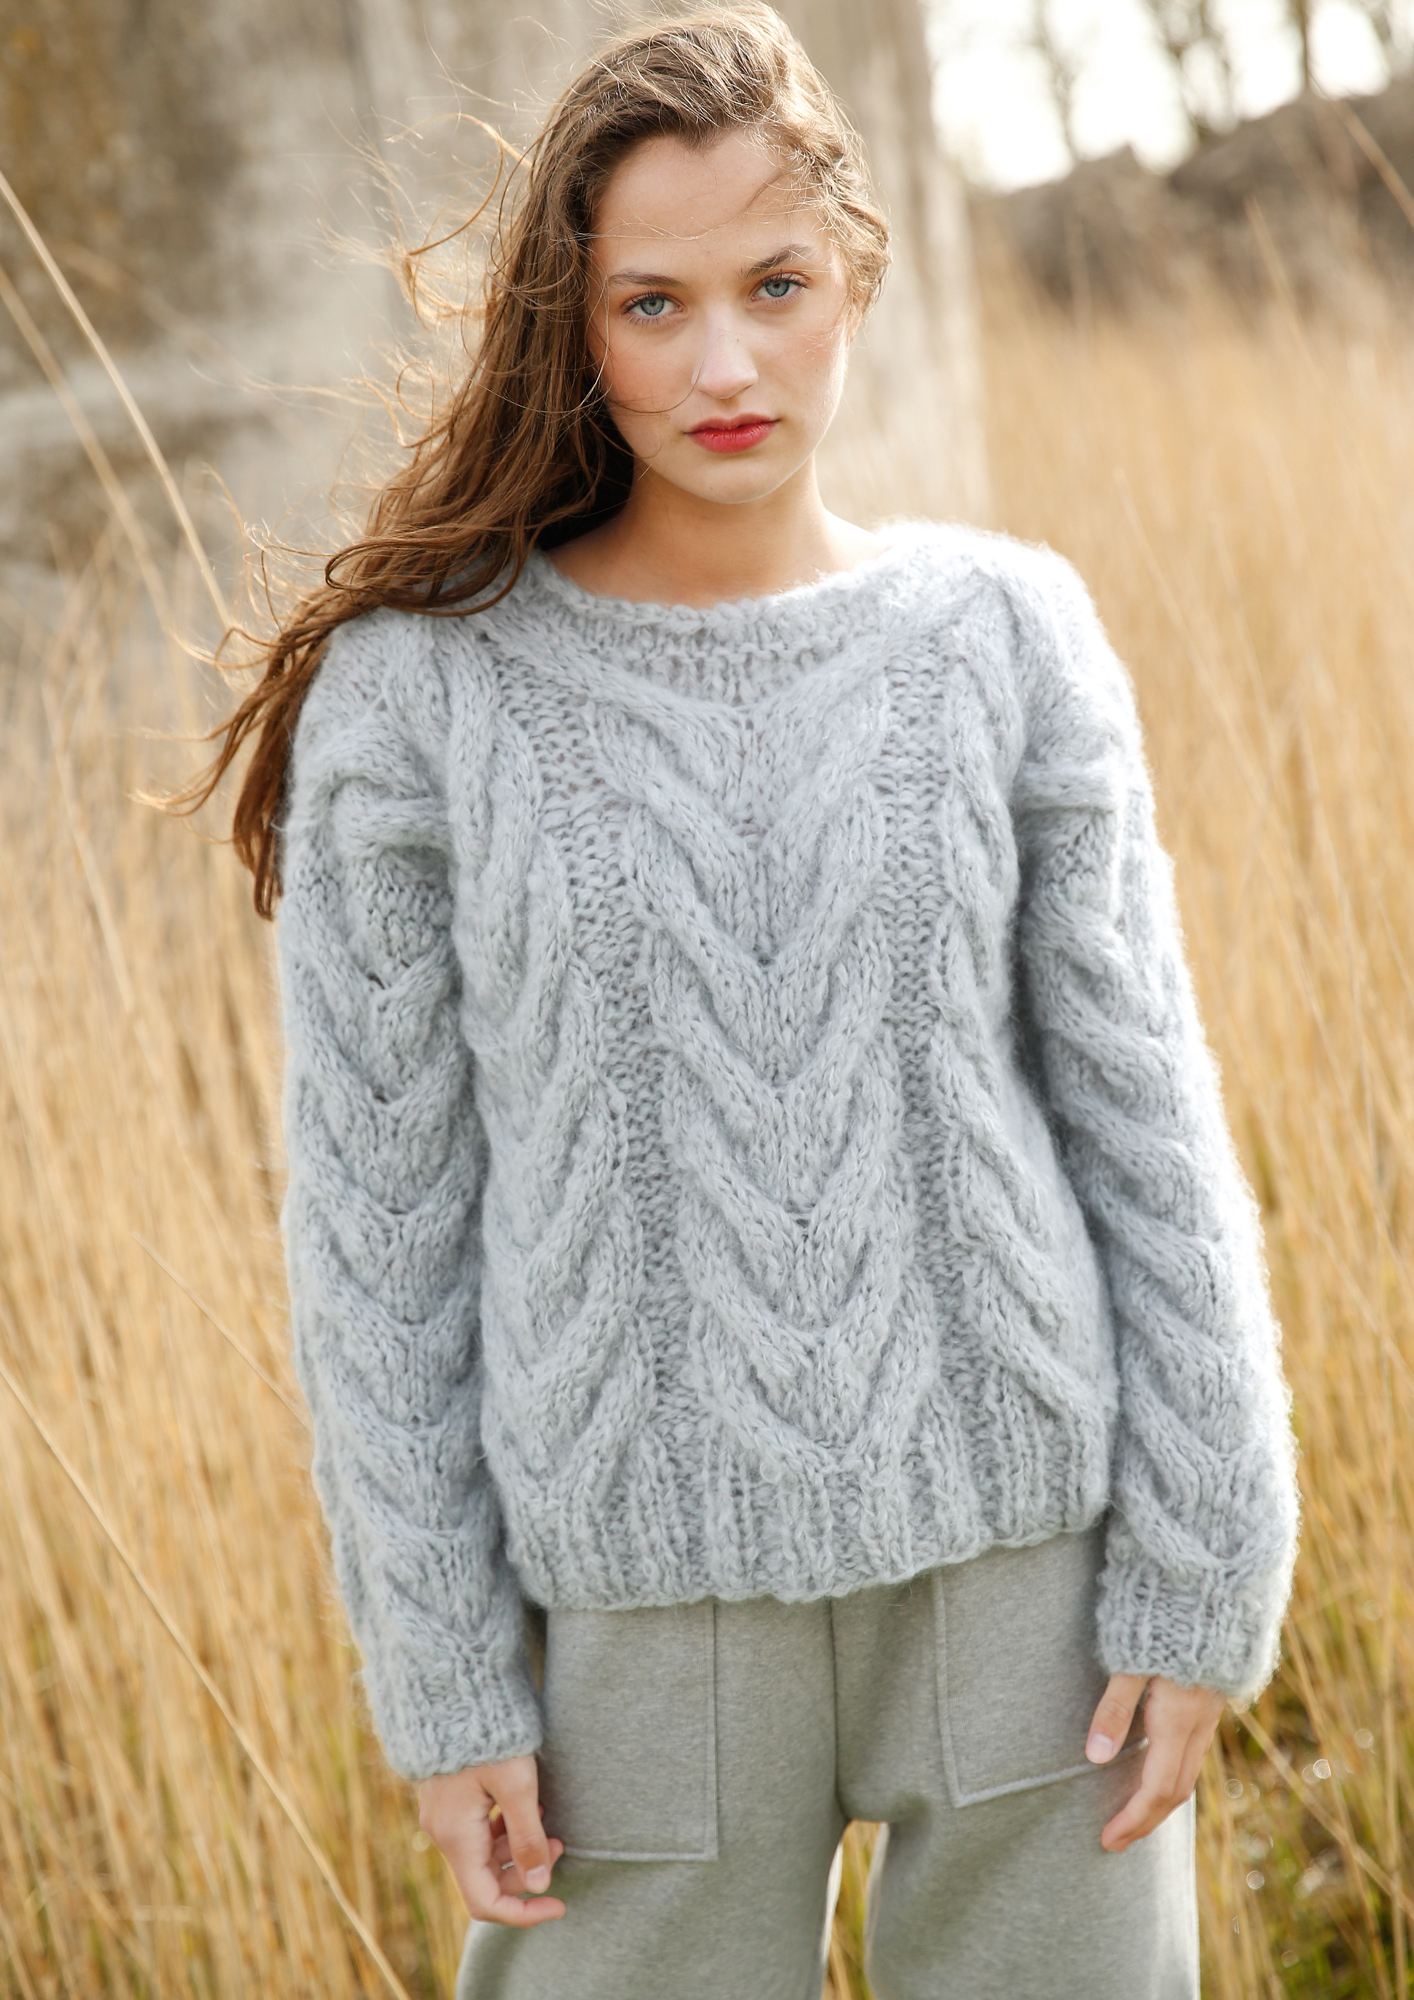 Knit Jumper Pattern Cable Knit Jumper Rebecca